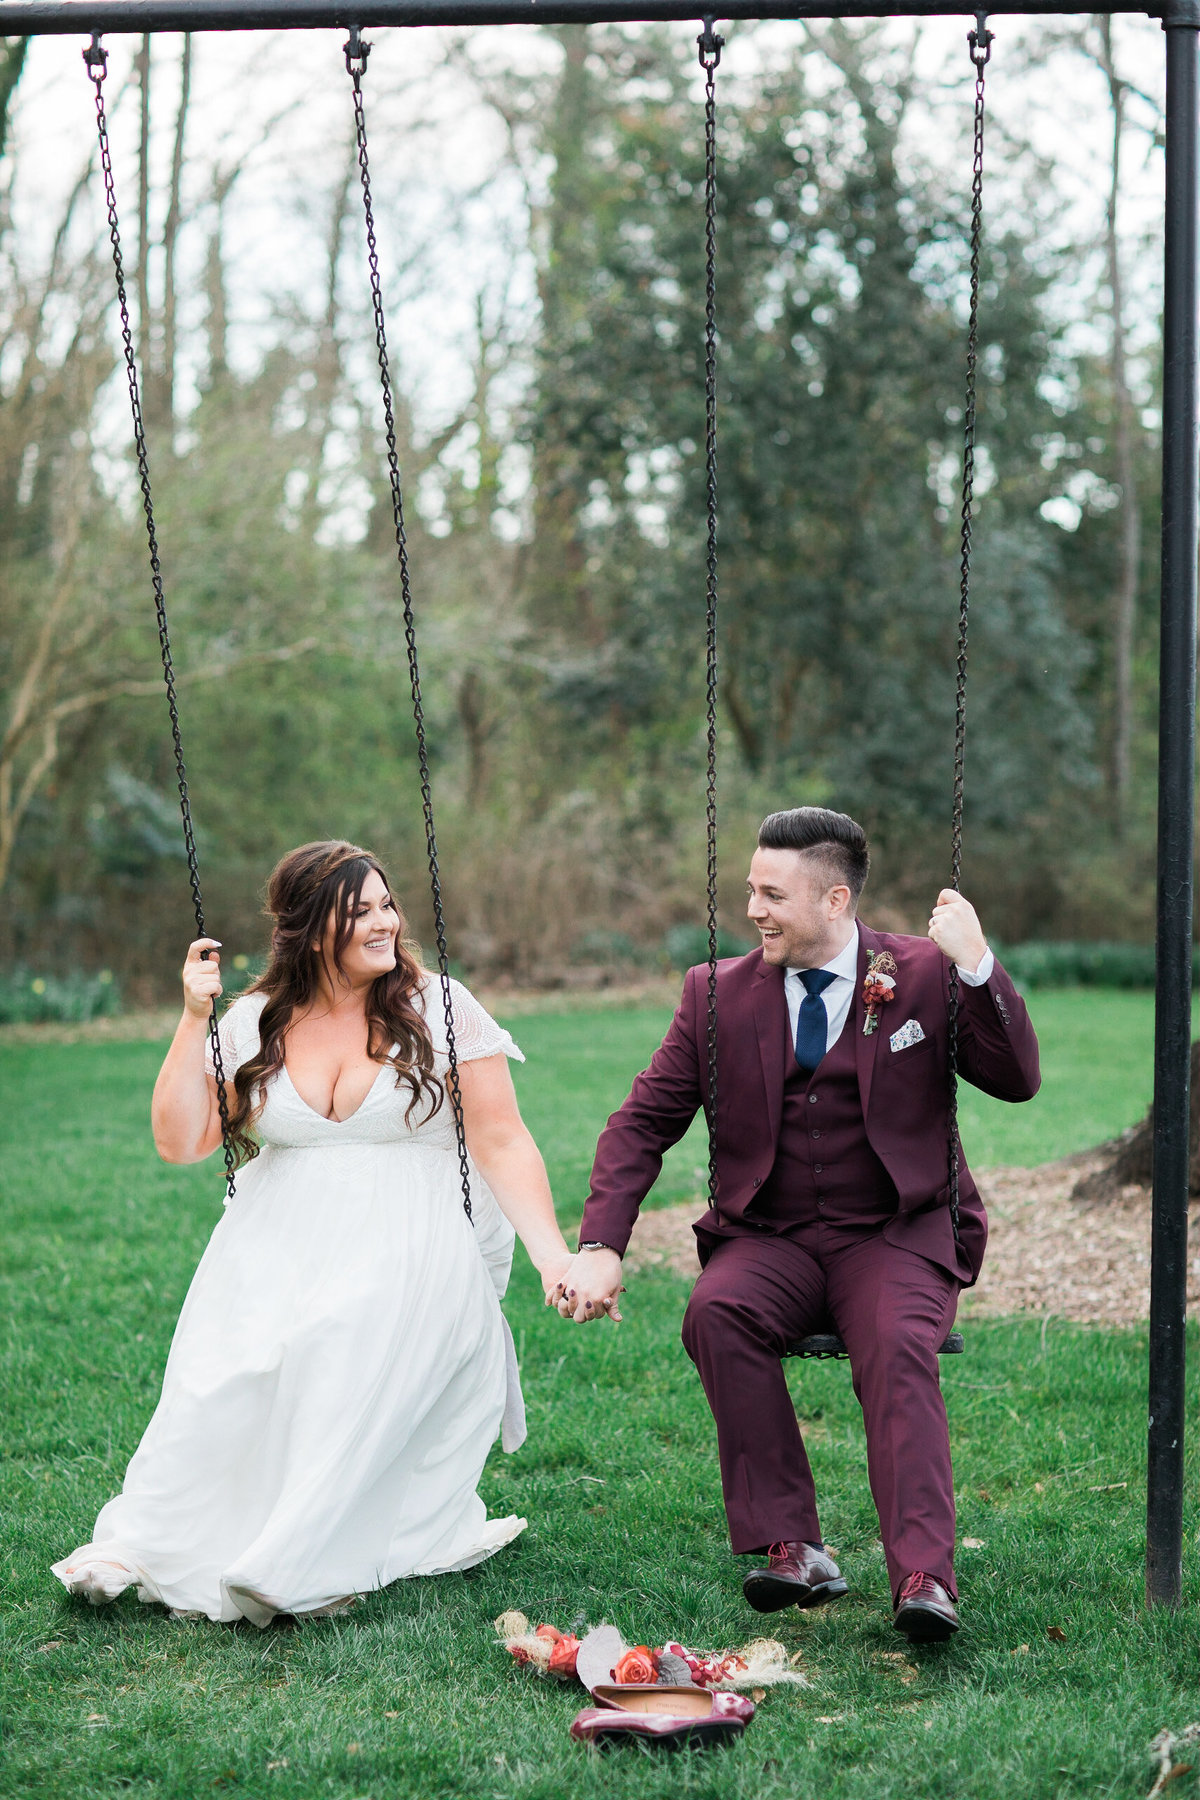 Wedding Photographer, bride and groom sitting together on swings